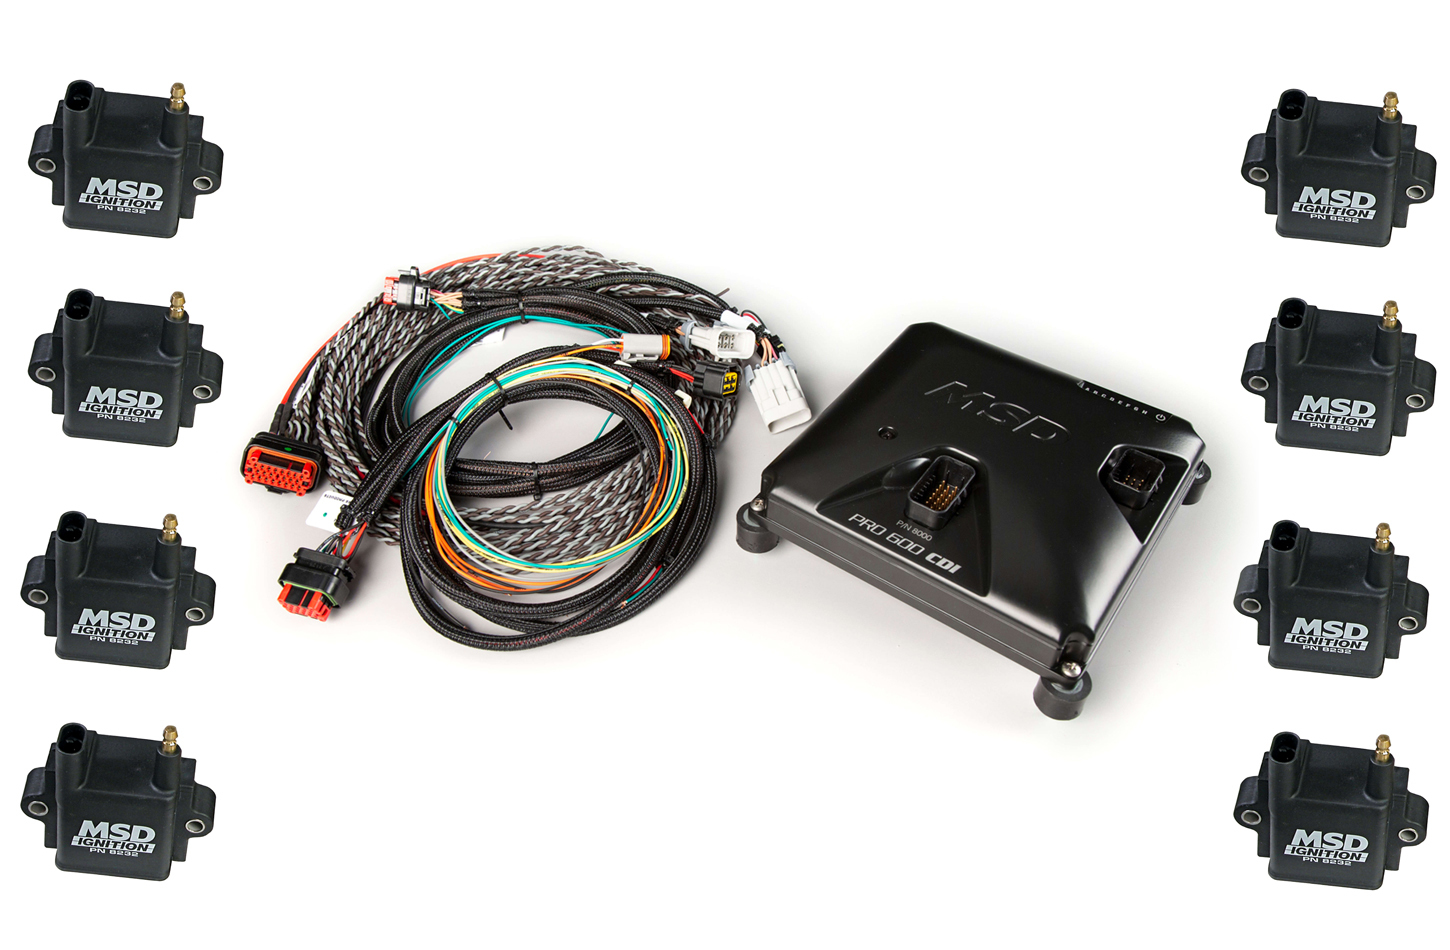 MSD Ignition 8000-8 Ignition Control Module, Pro 600 CDI, 8 Channel, Coils / Harness Included, Holley EFI Systems, Kit